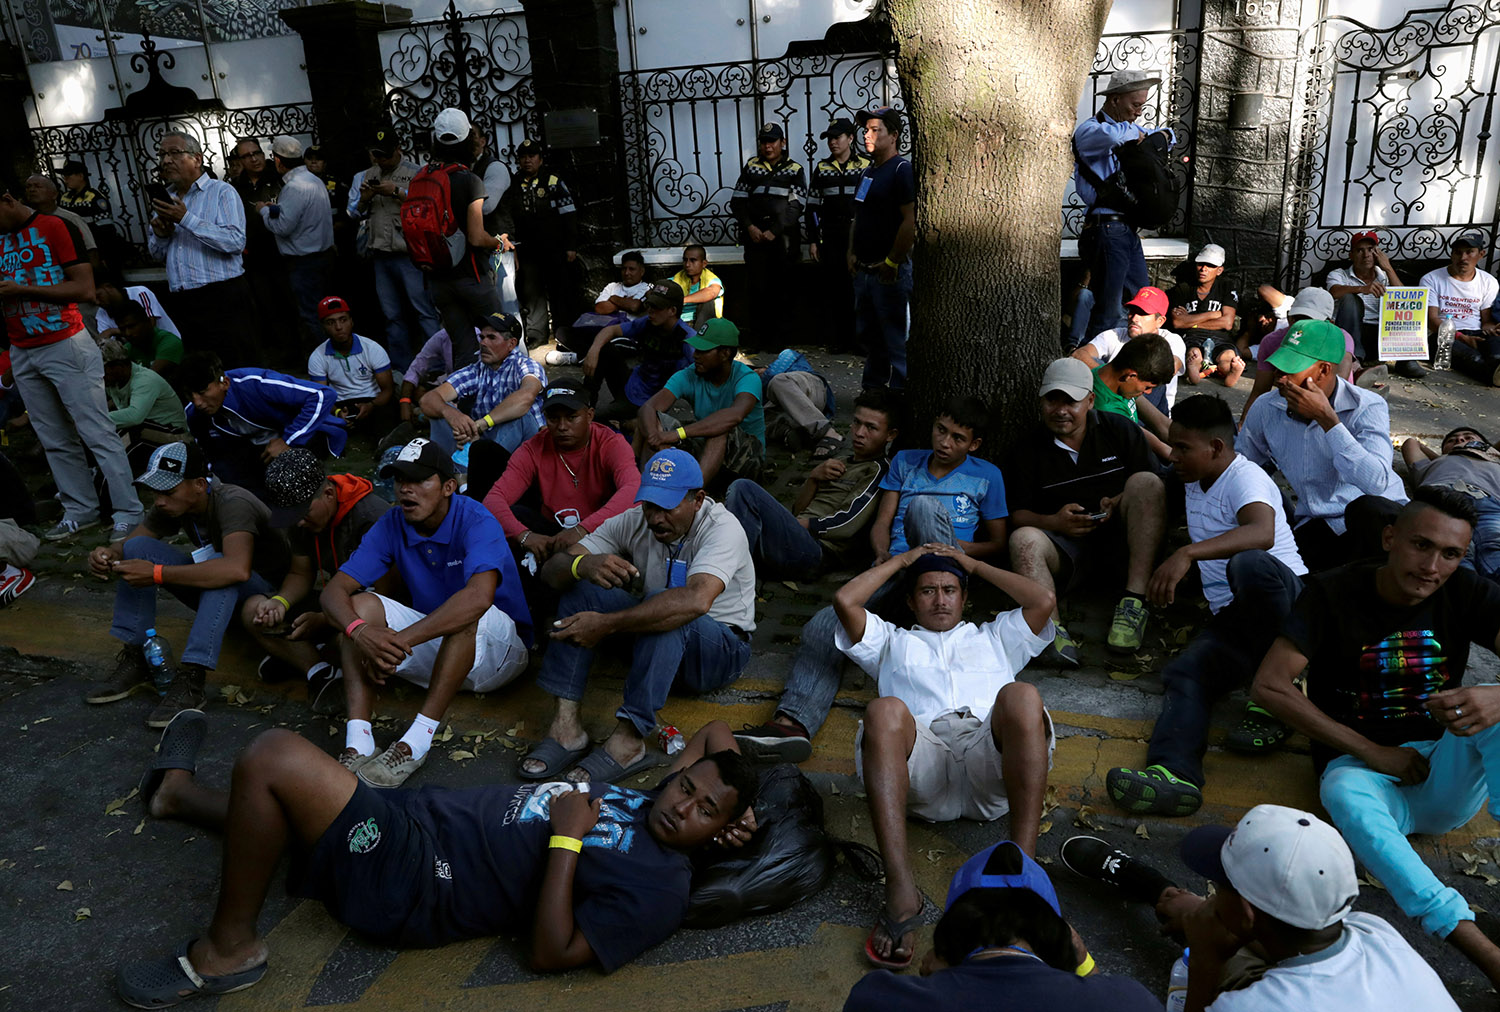 Migrants, part of a caravan traveling from Central America en route to the United States, wait outside a UN Refugee Agency (UNHCR) office during a march demanding buses to take them to the U.S. border, in Mexico City, Mexico November 8, 2018. REUTERS/Henry Romero/File Photo - RC185564C660